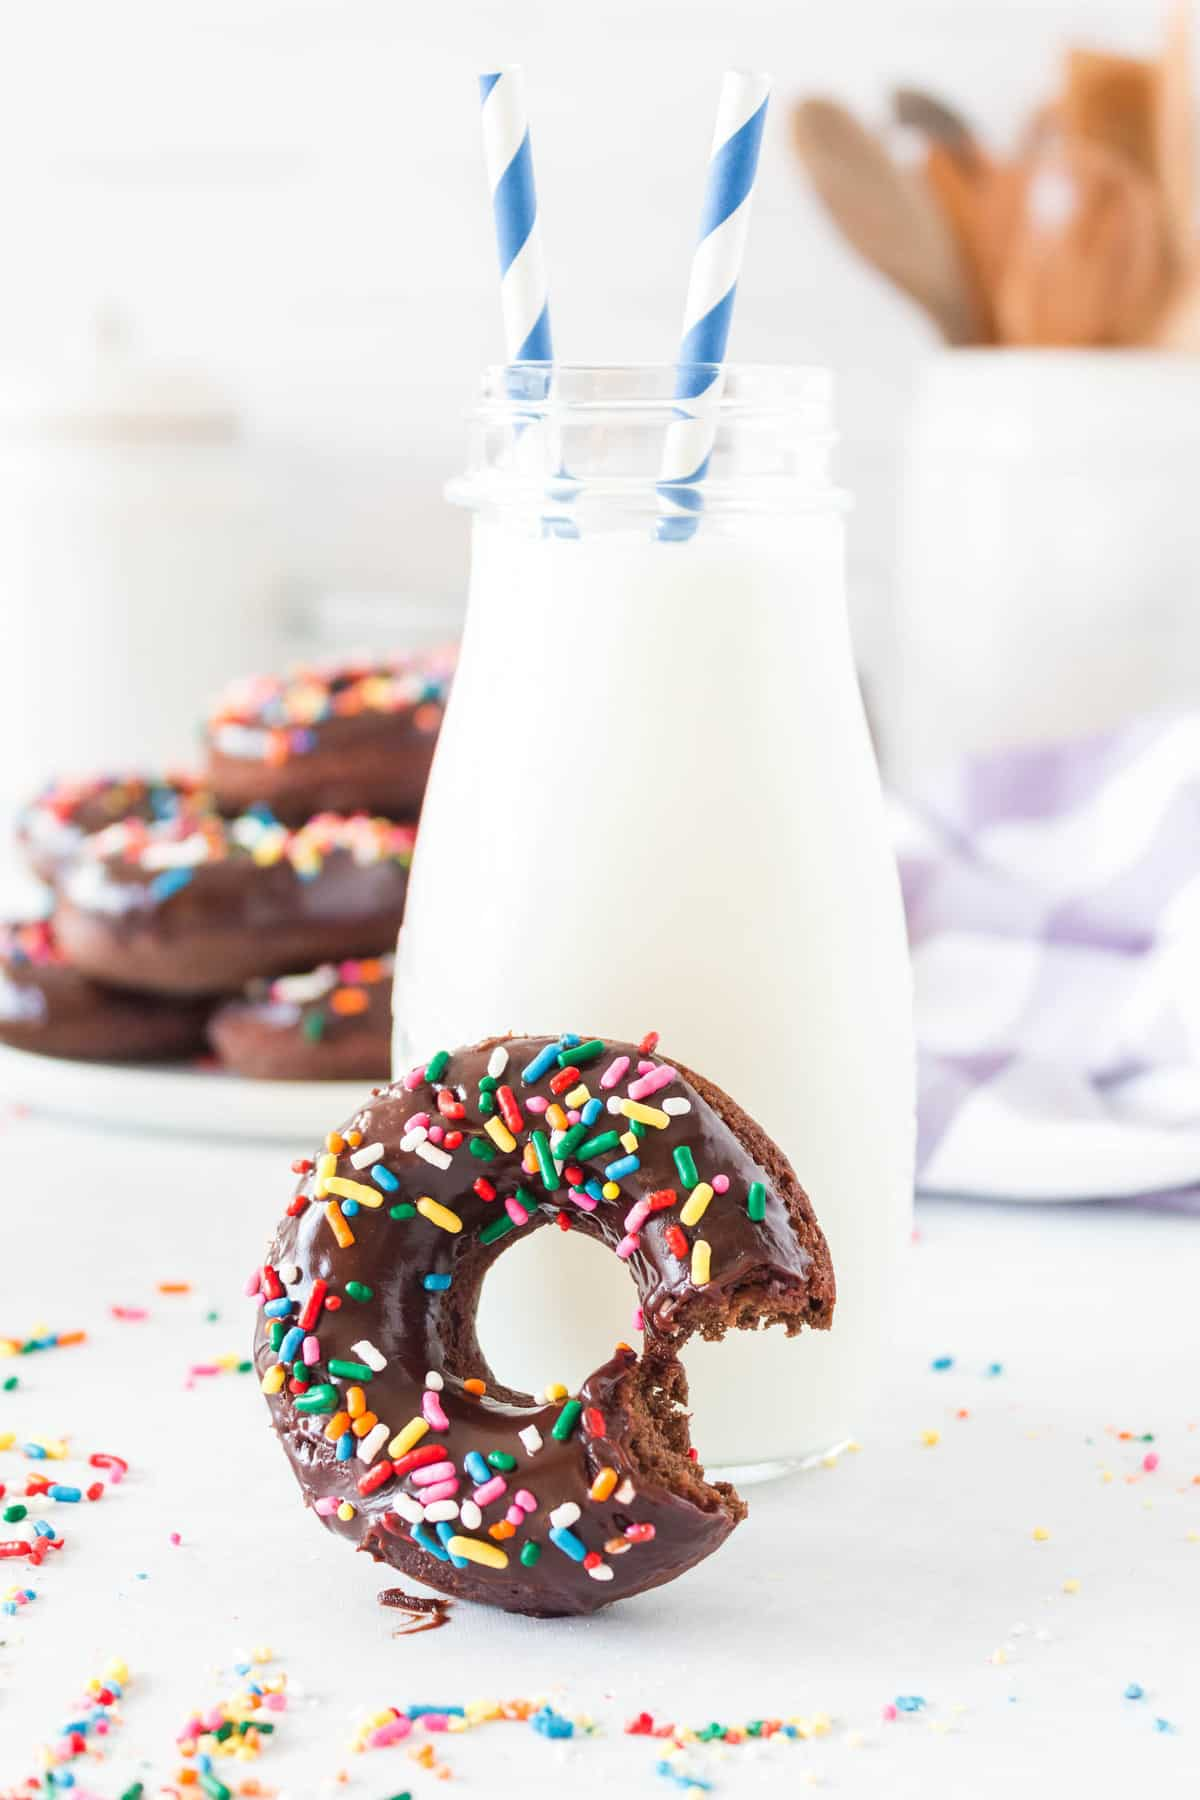 Chocolate sprinkle donut with a bite out of it, in front of a glass bottle of milk.